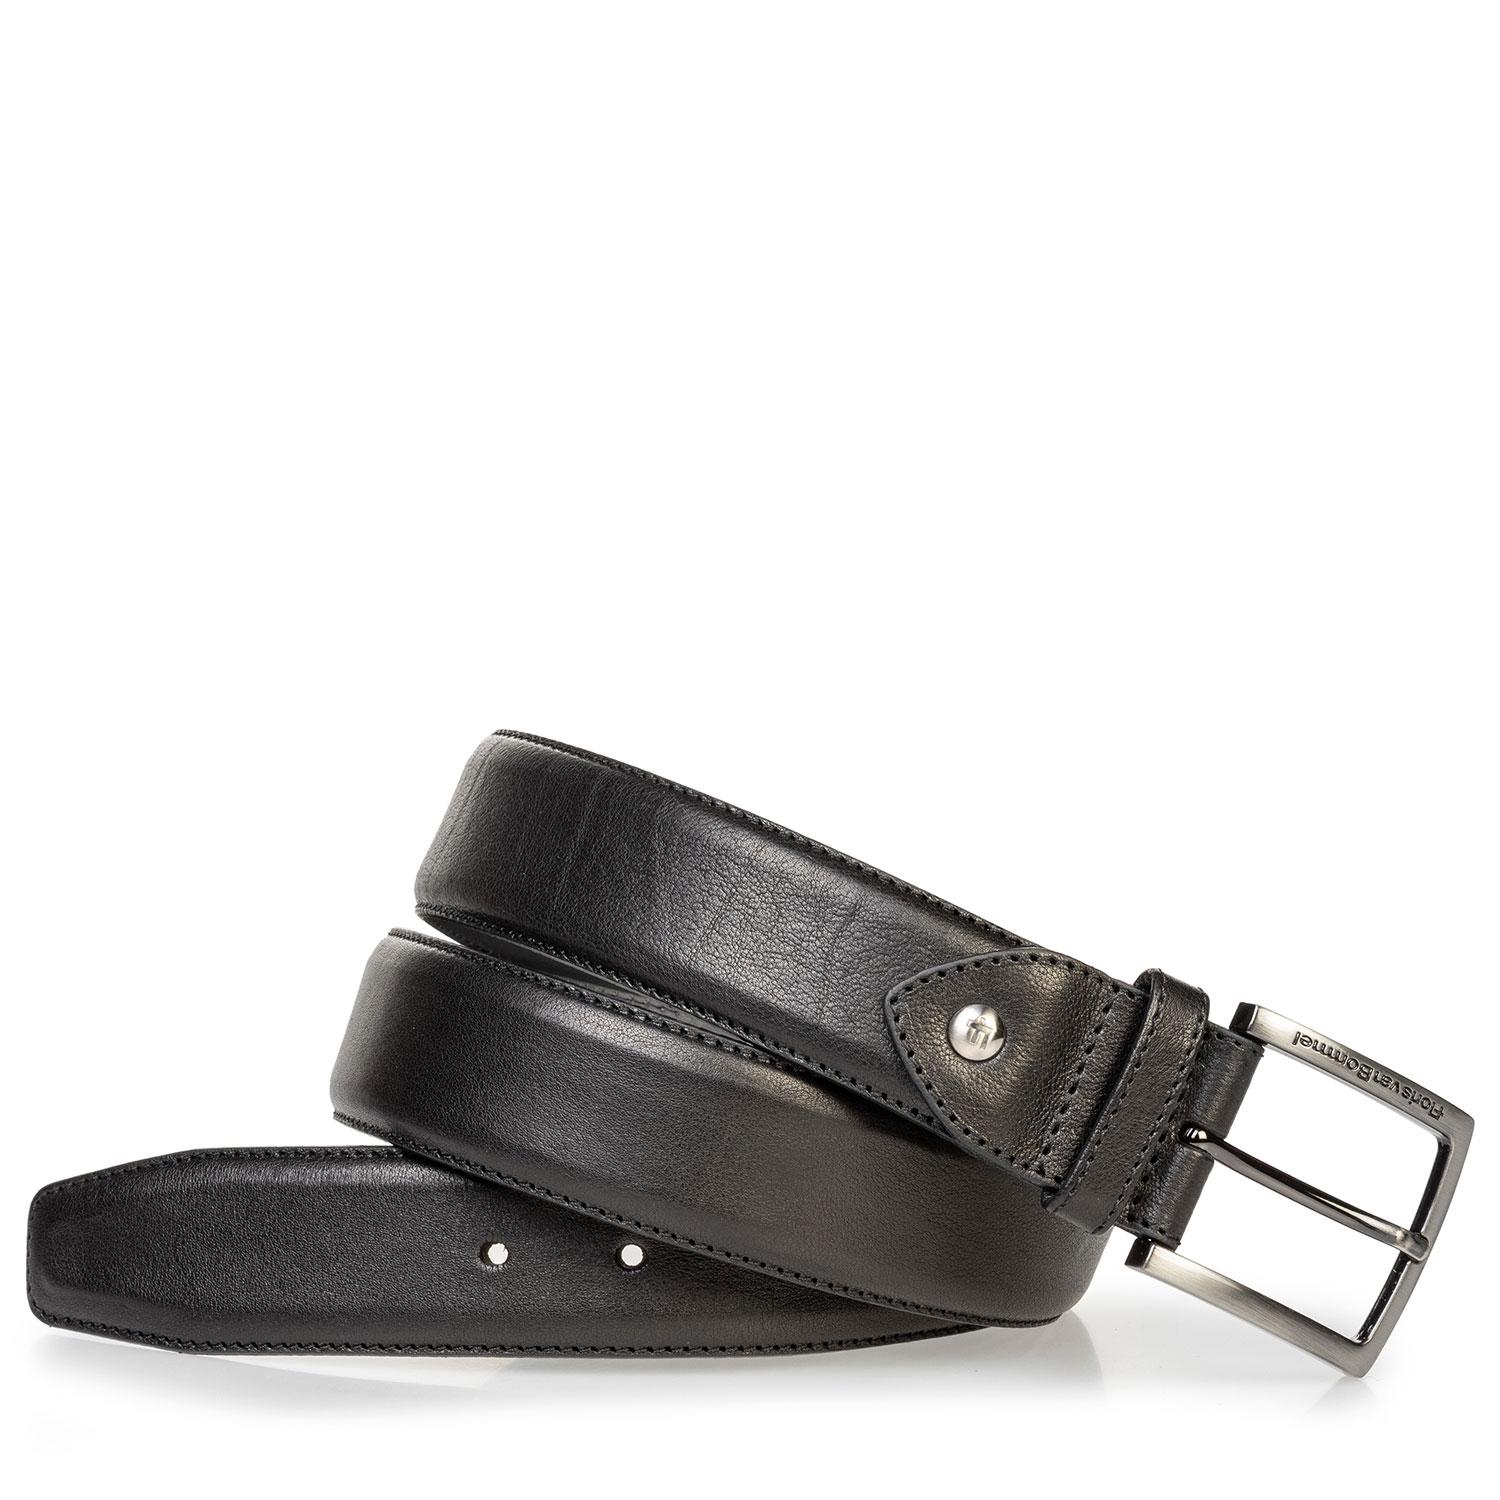 75202/92 - Calf leather belt black